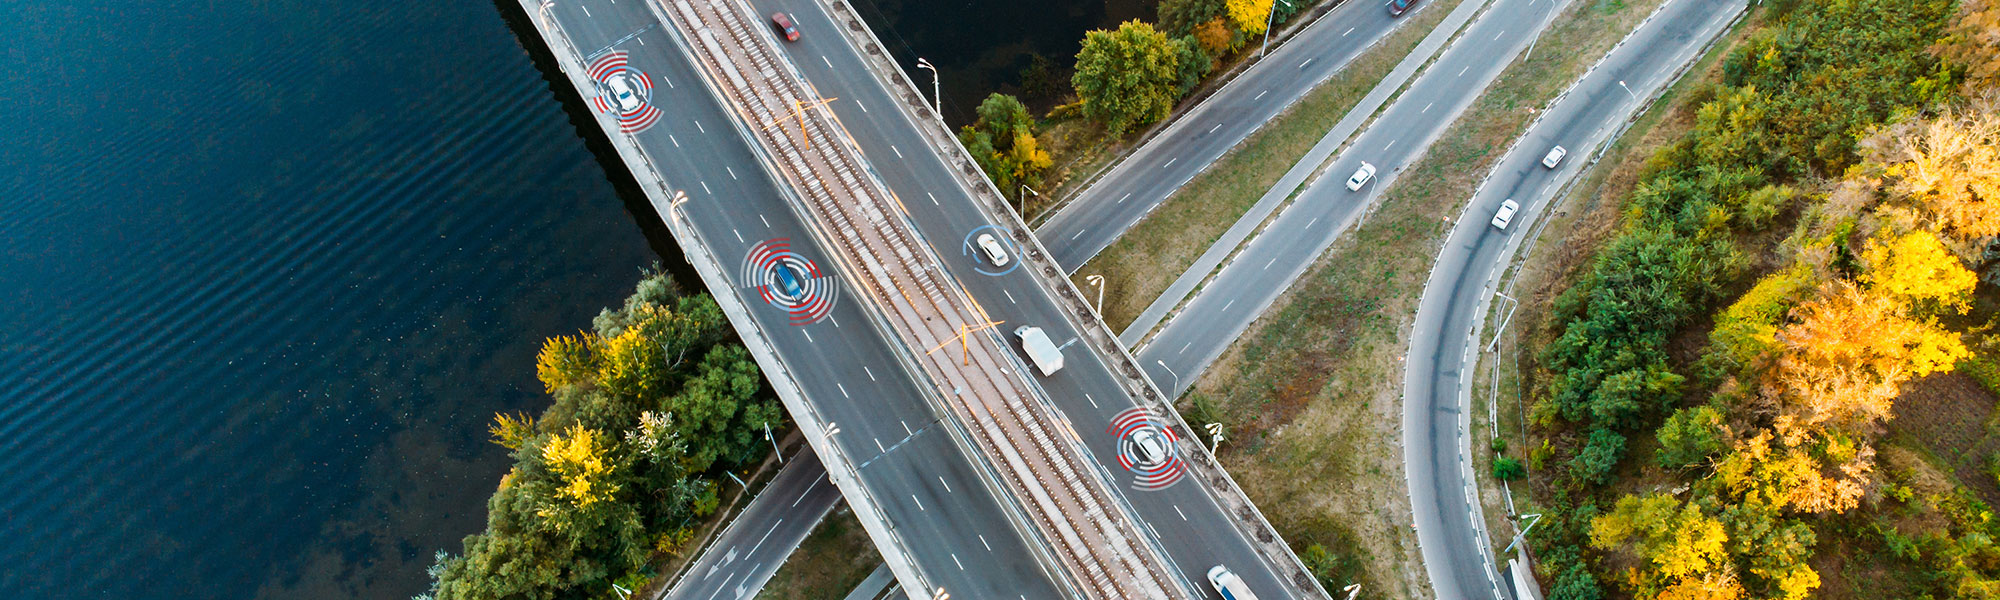 What is the role of TomTom in the world of connected infrastructure and vehicles?